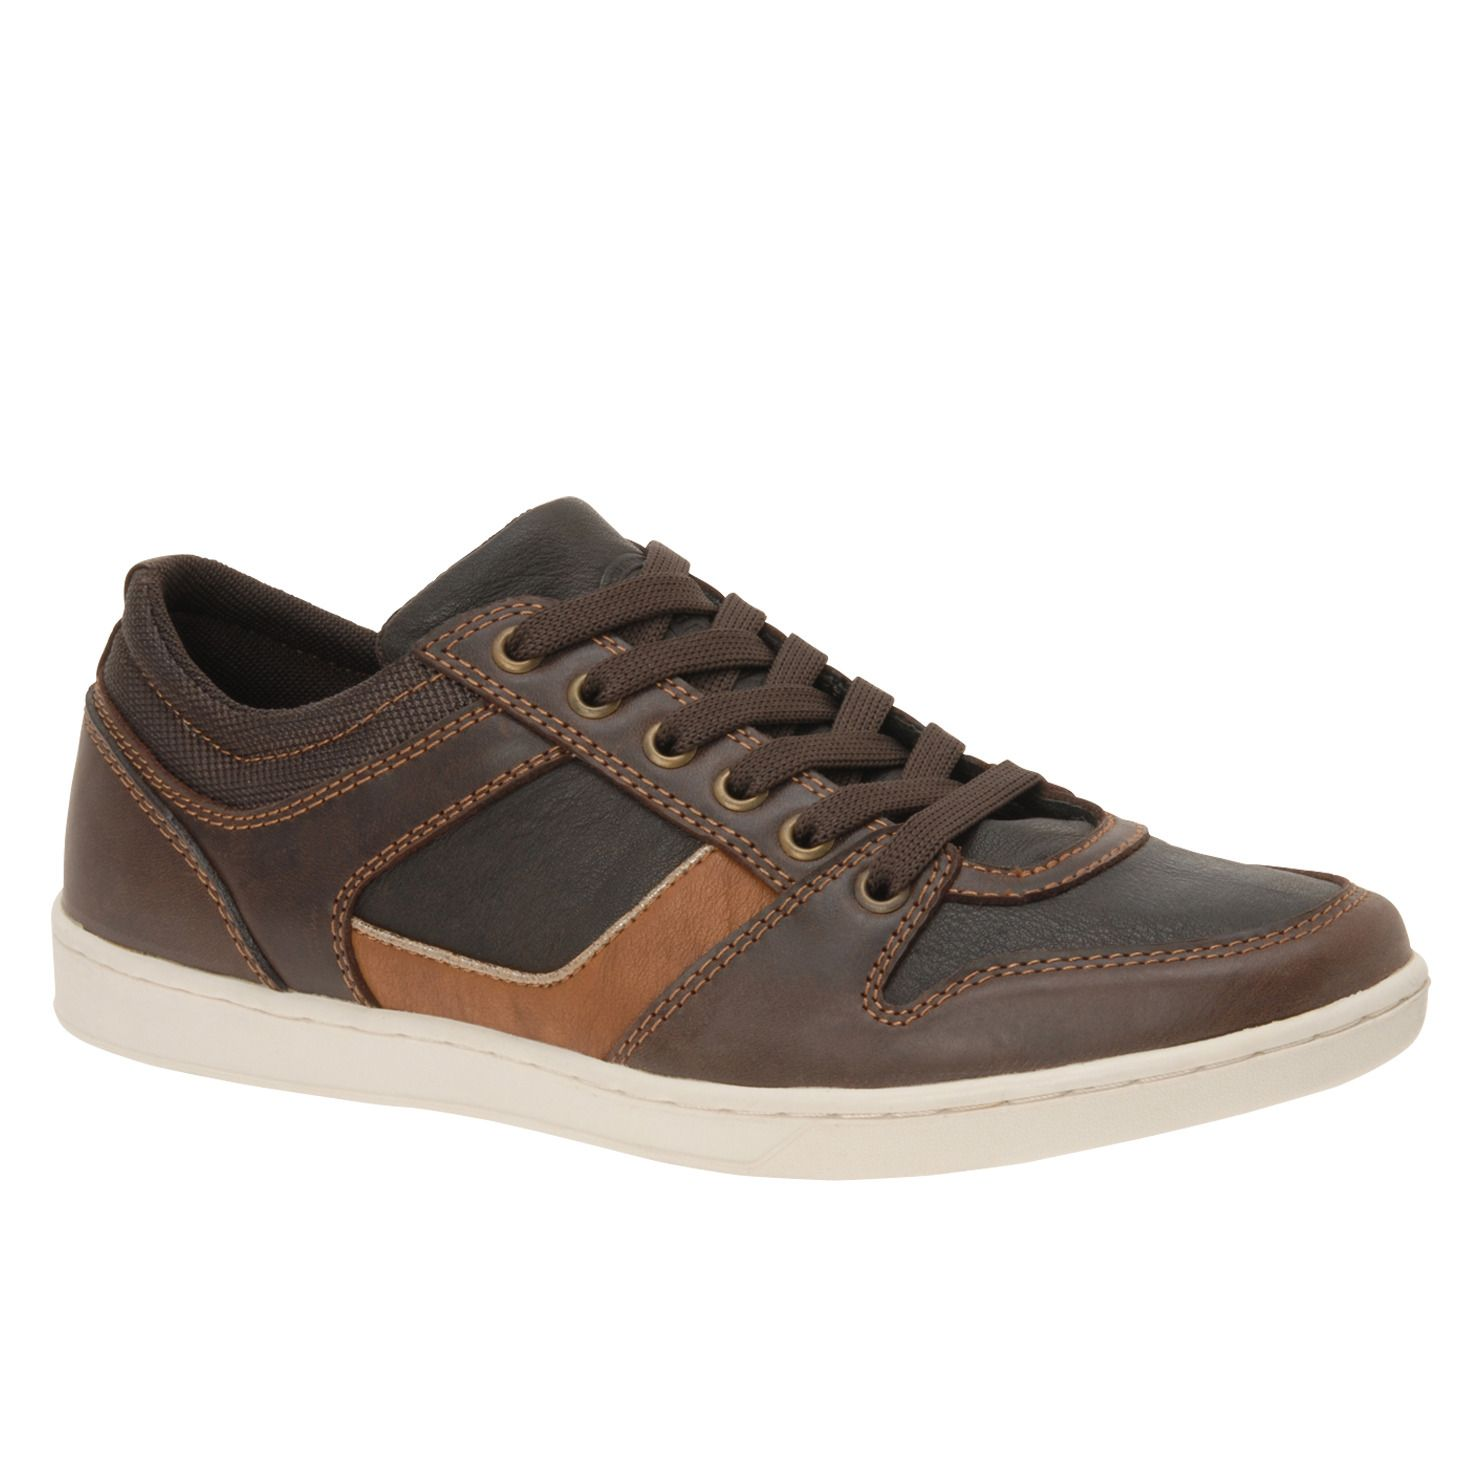 WASHKO men's sneakers shoes for sale at ALDO Shoes